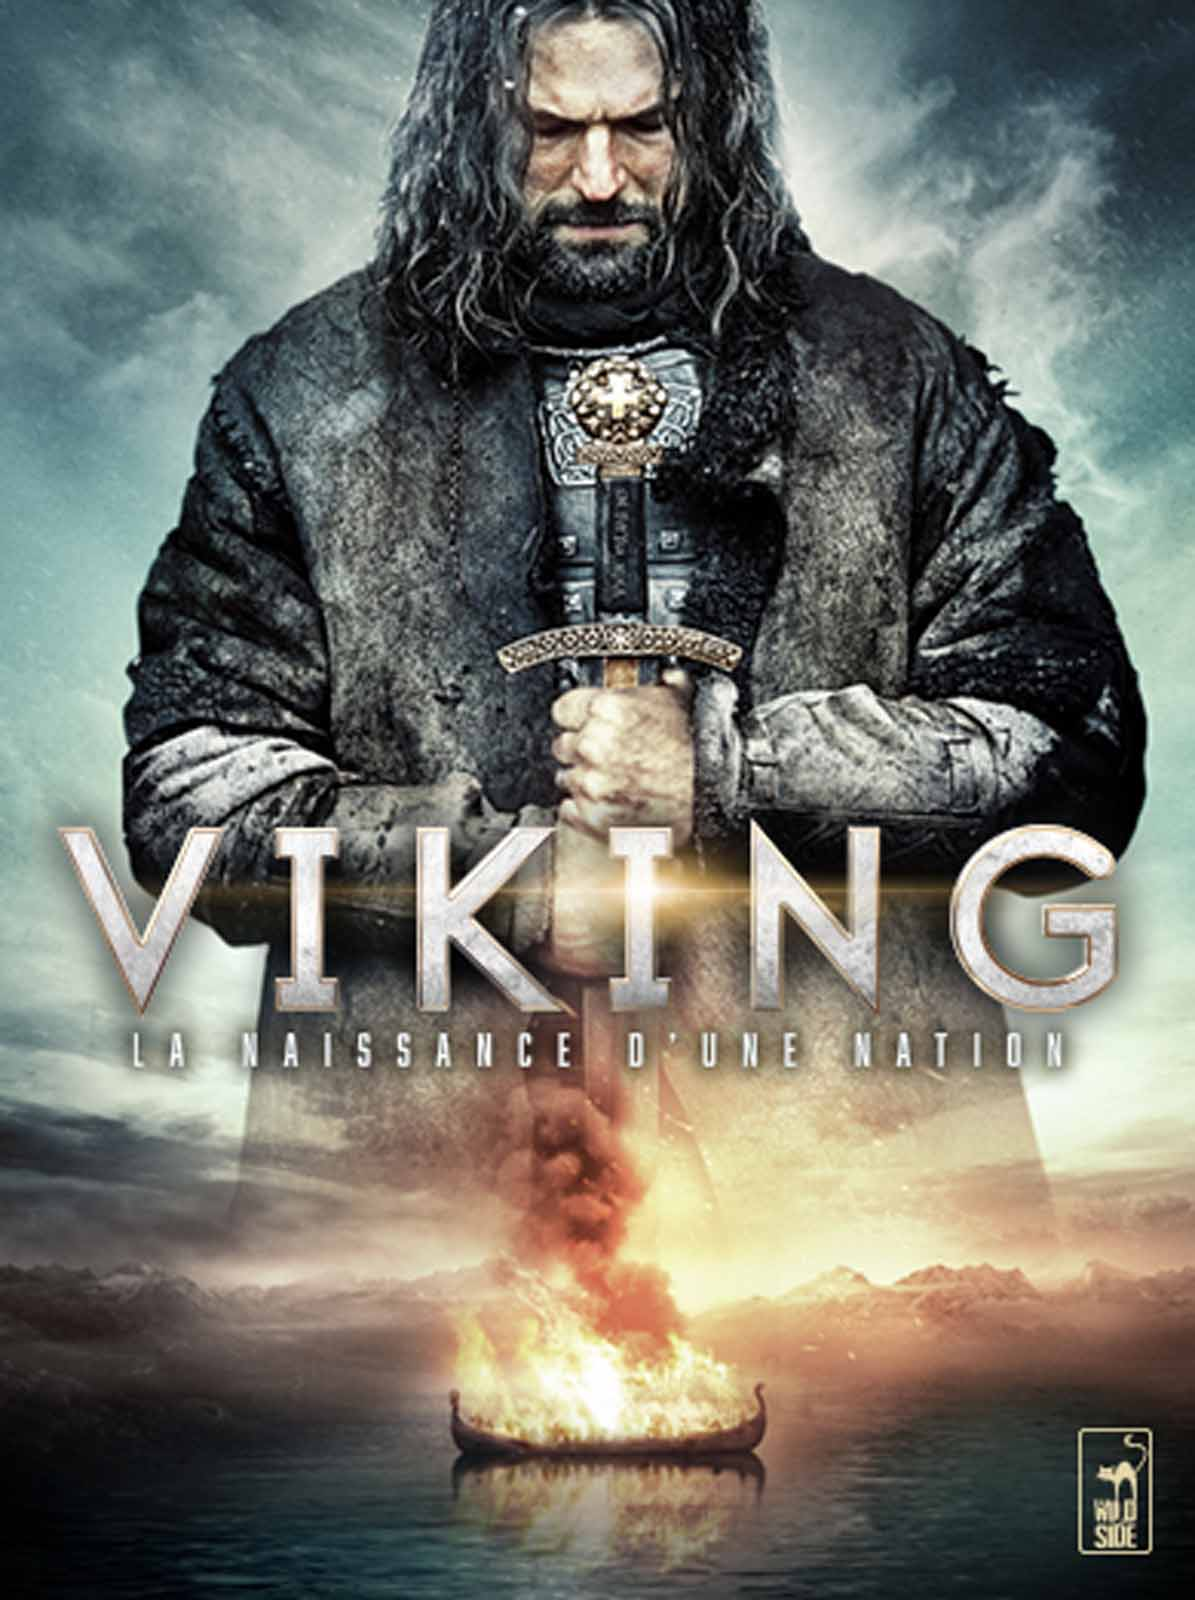 Who is Irina in the film Viking by A. Kravchuk Who plays S. Khodchenkov